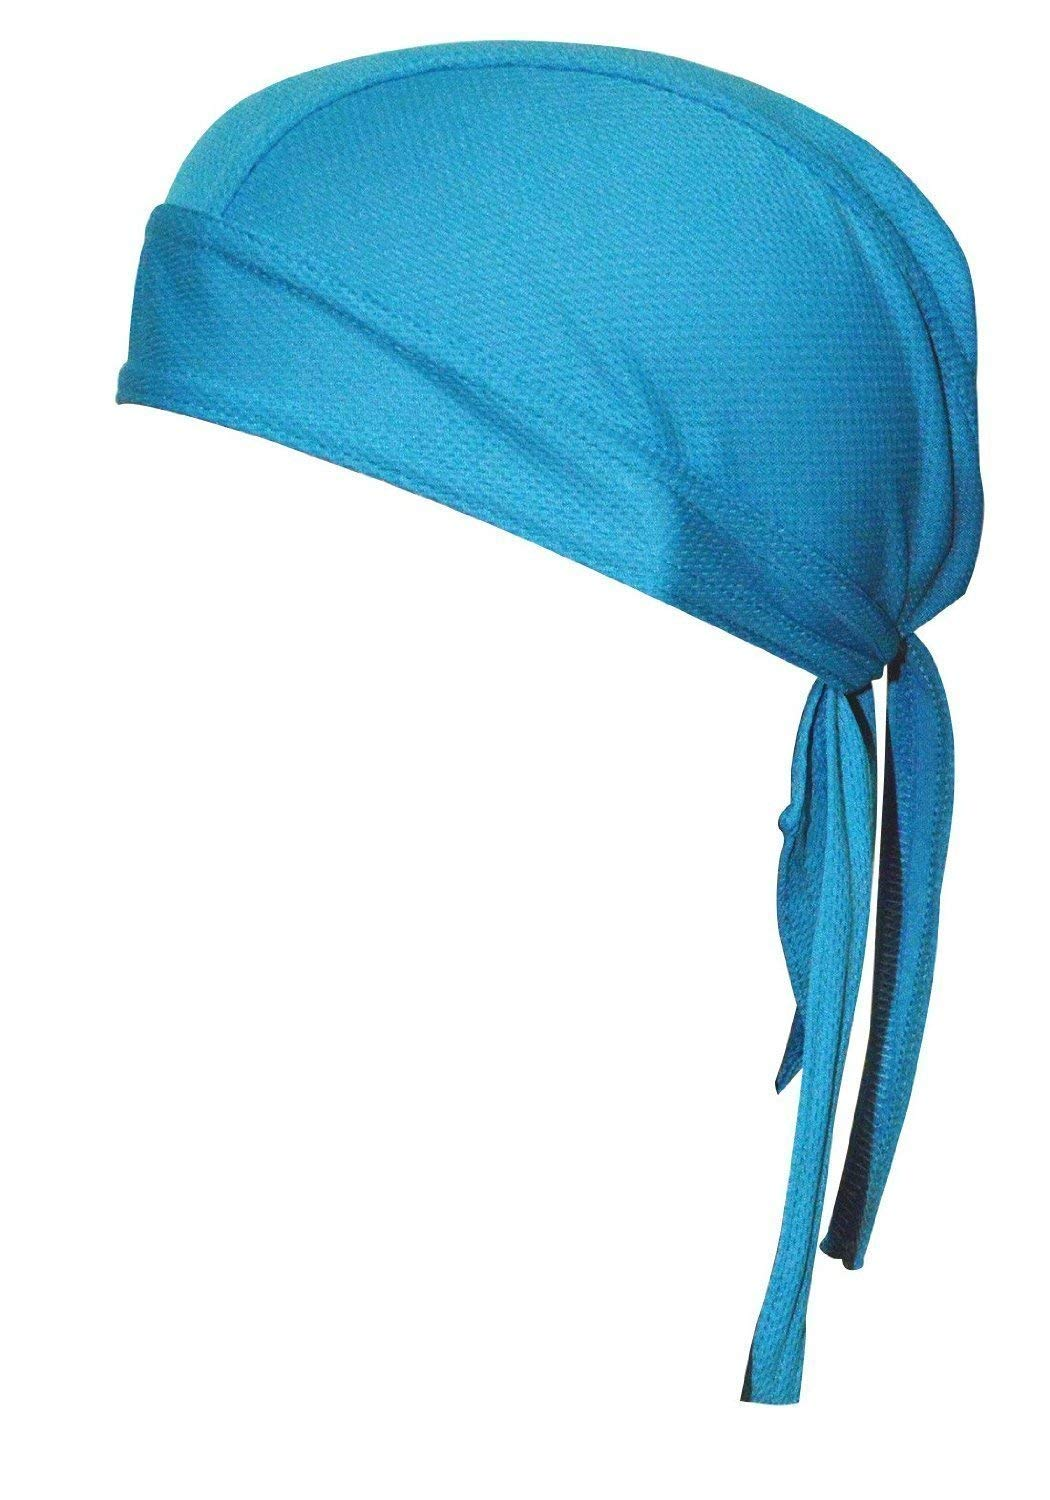 QING Sweat Wicking Beanie Cap Hat Chemo Cap Skull Cap for Men and Women (Sky Blue 1 Pack) by QING